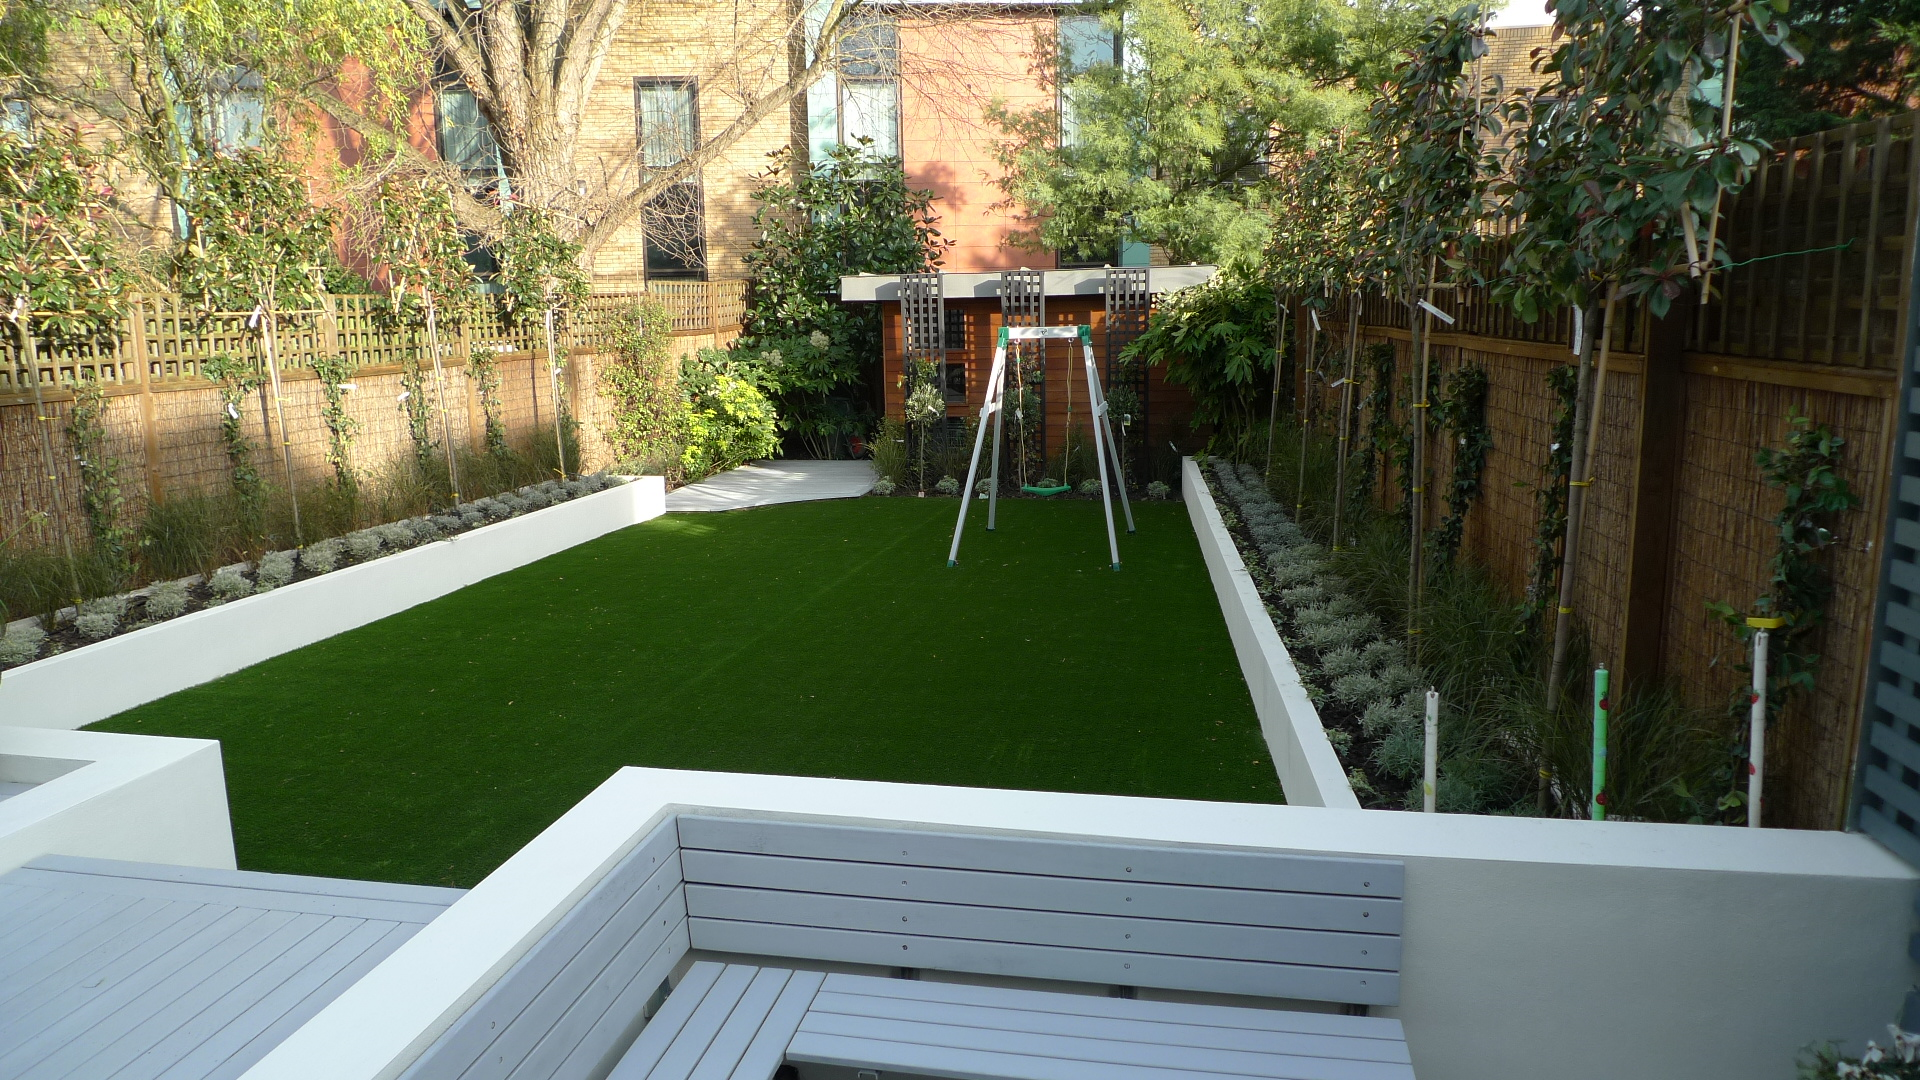 Modern garden design ideas london london garden design for Backyard layout ideas